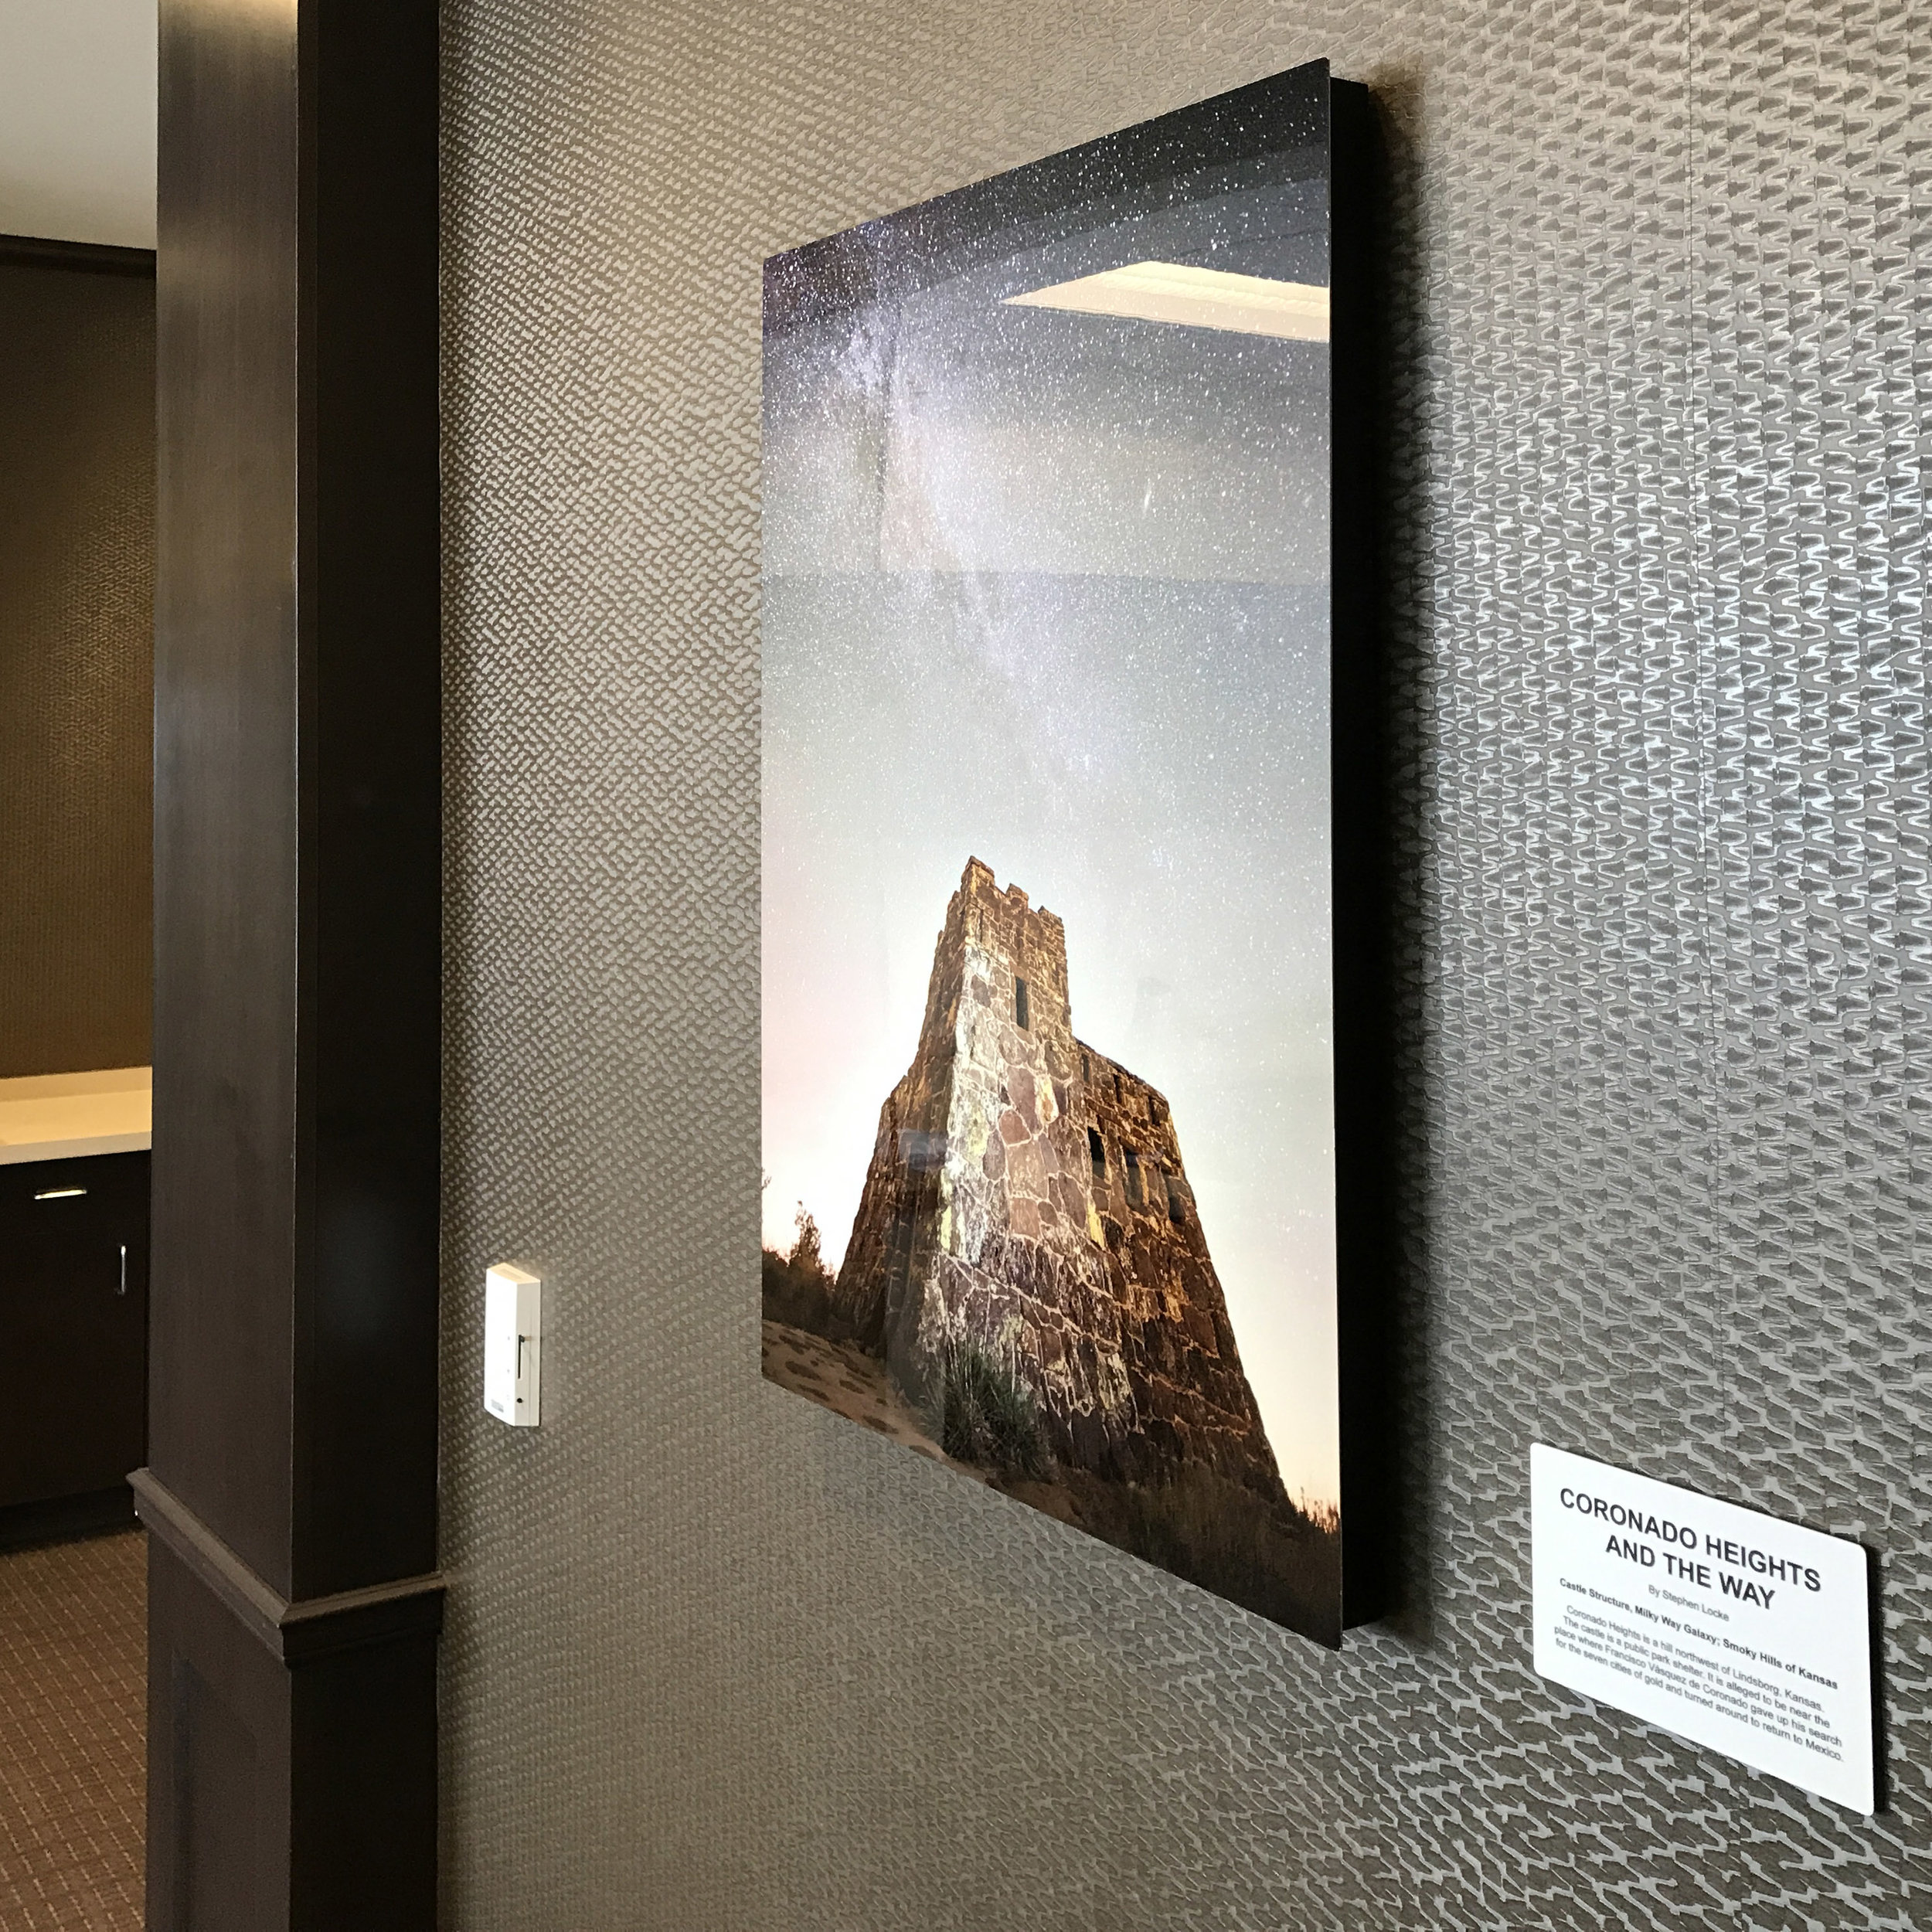 Coronado Heights and the Way in situ at KCB 30 x 20 on metal